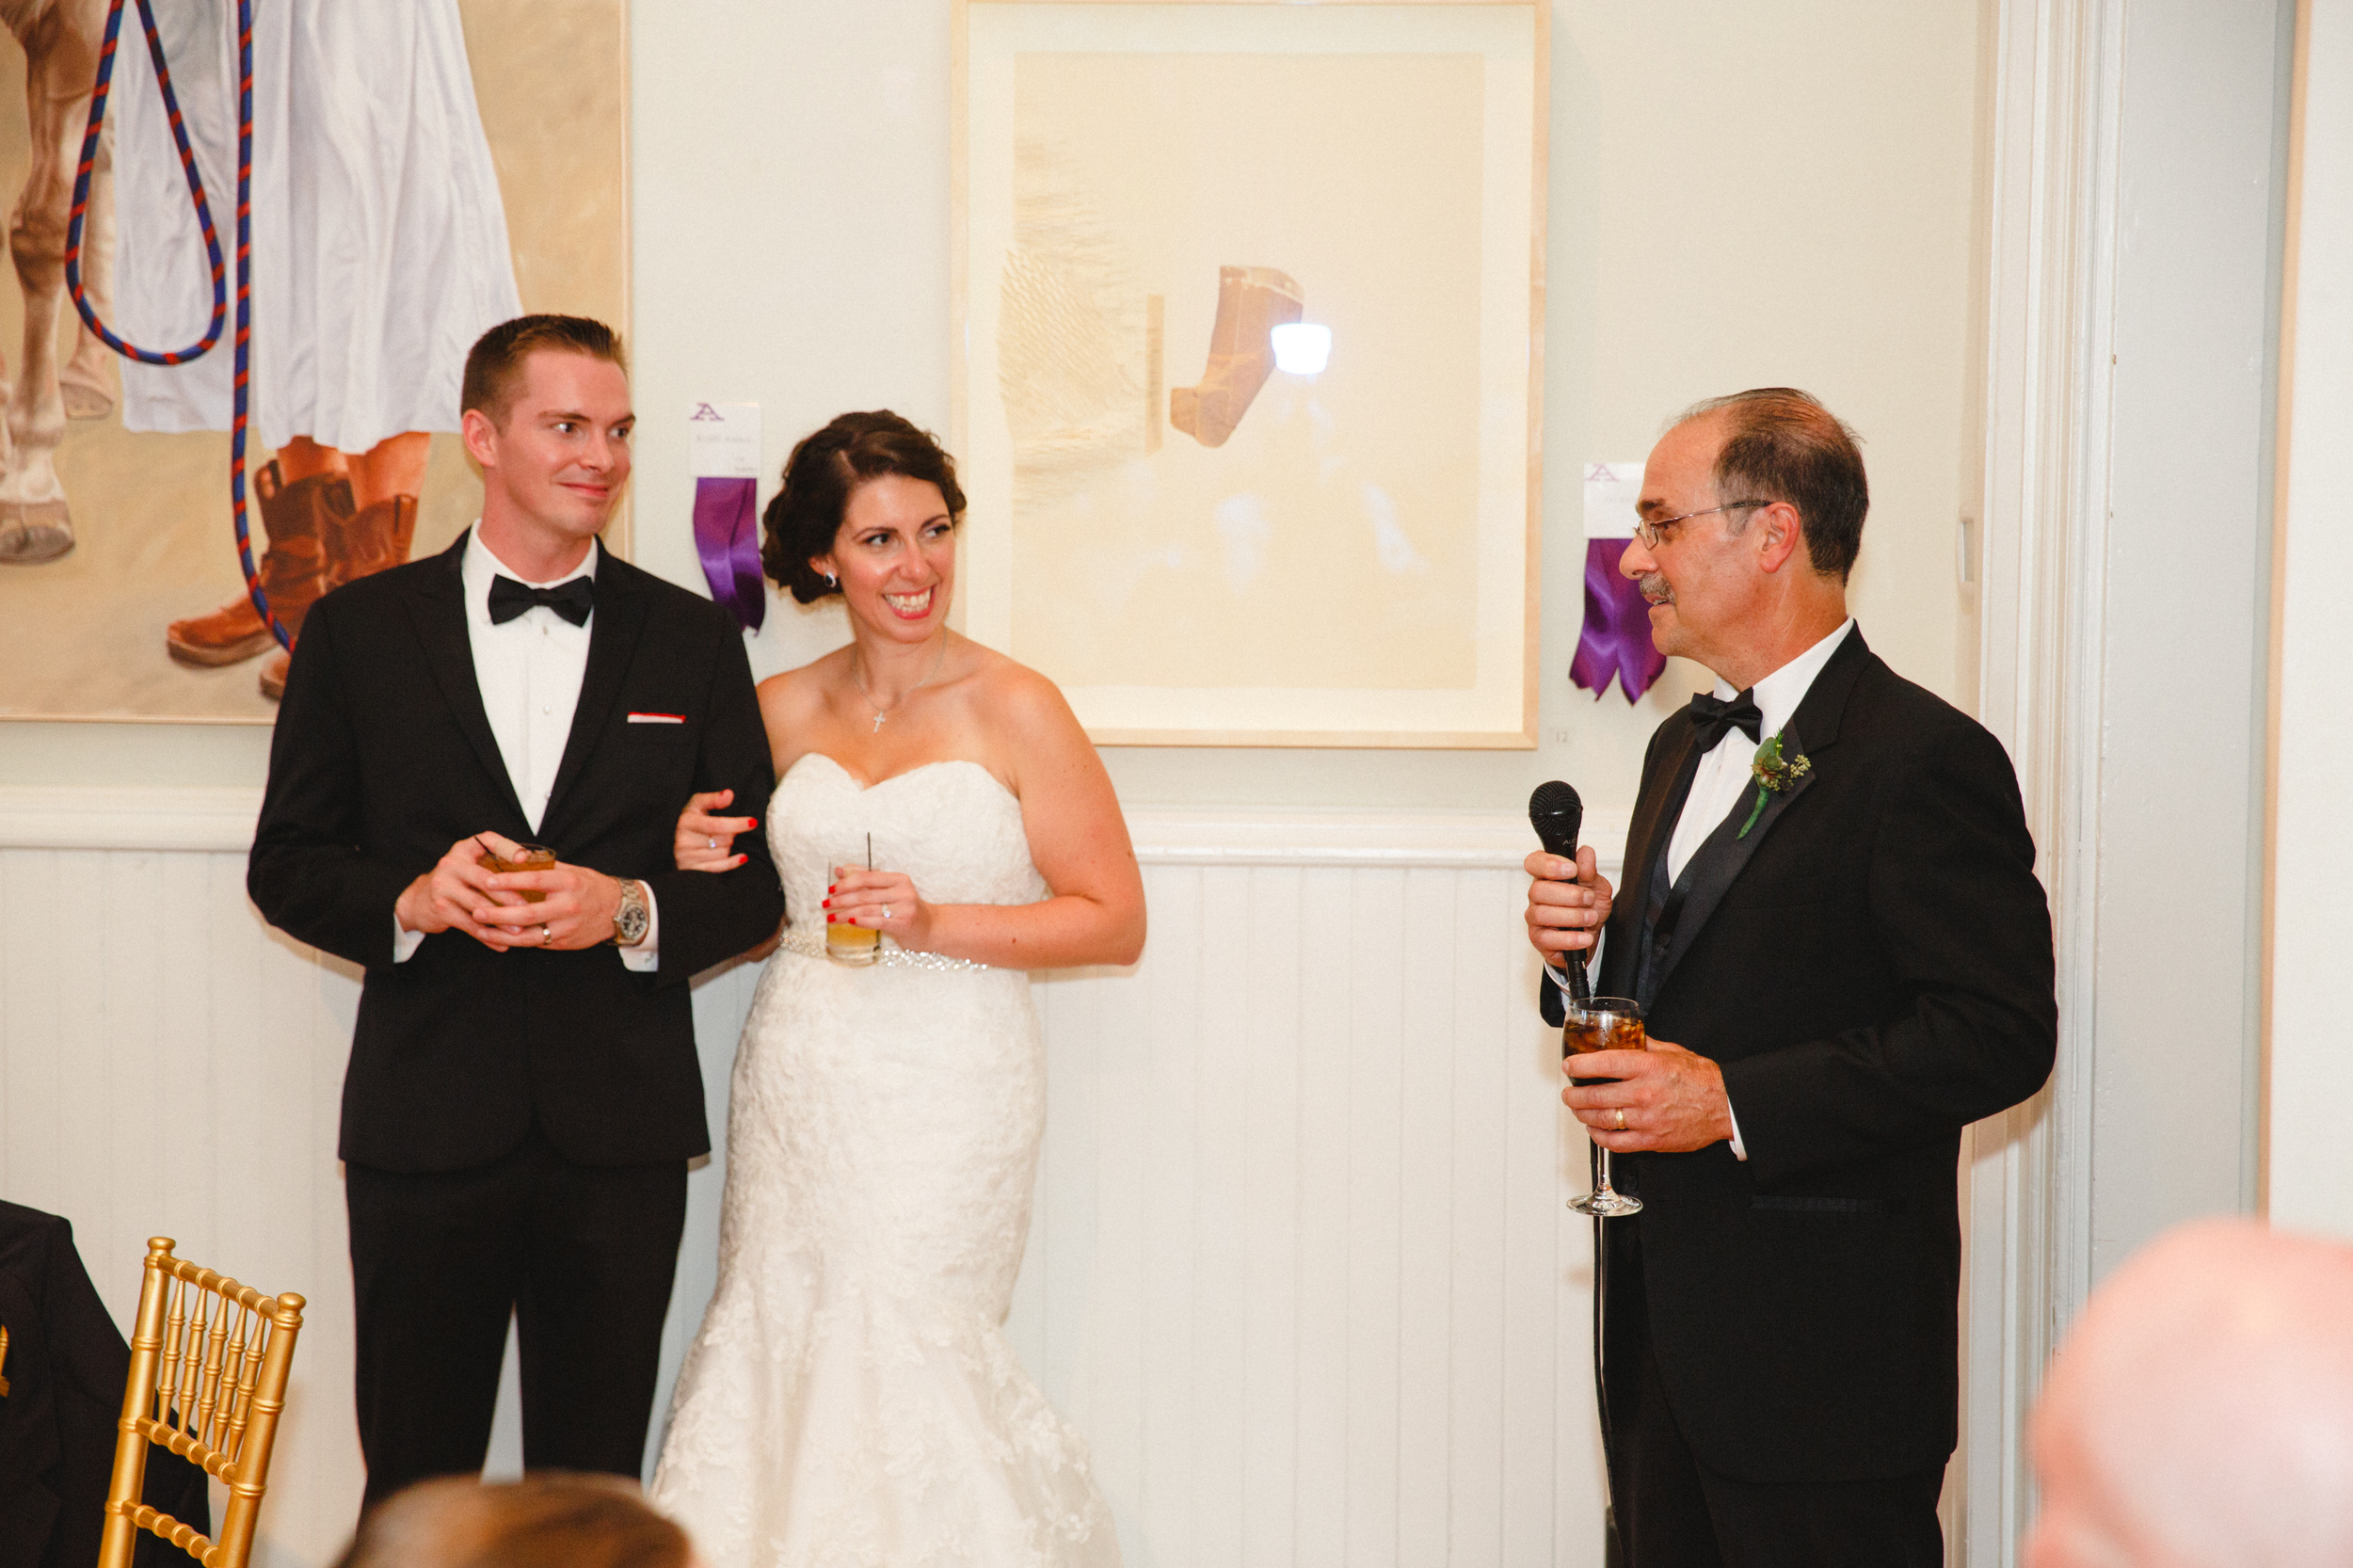 Vness_Photography_Wedding_Photographer_Washington-DC_Fish_Wedding-897.jpg